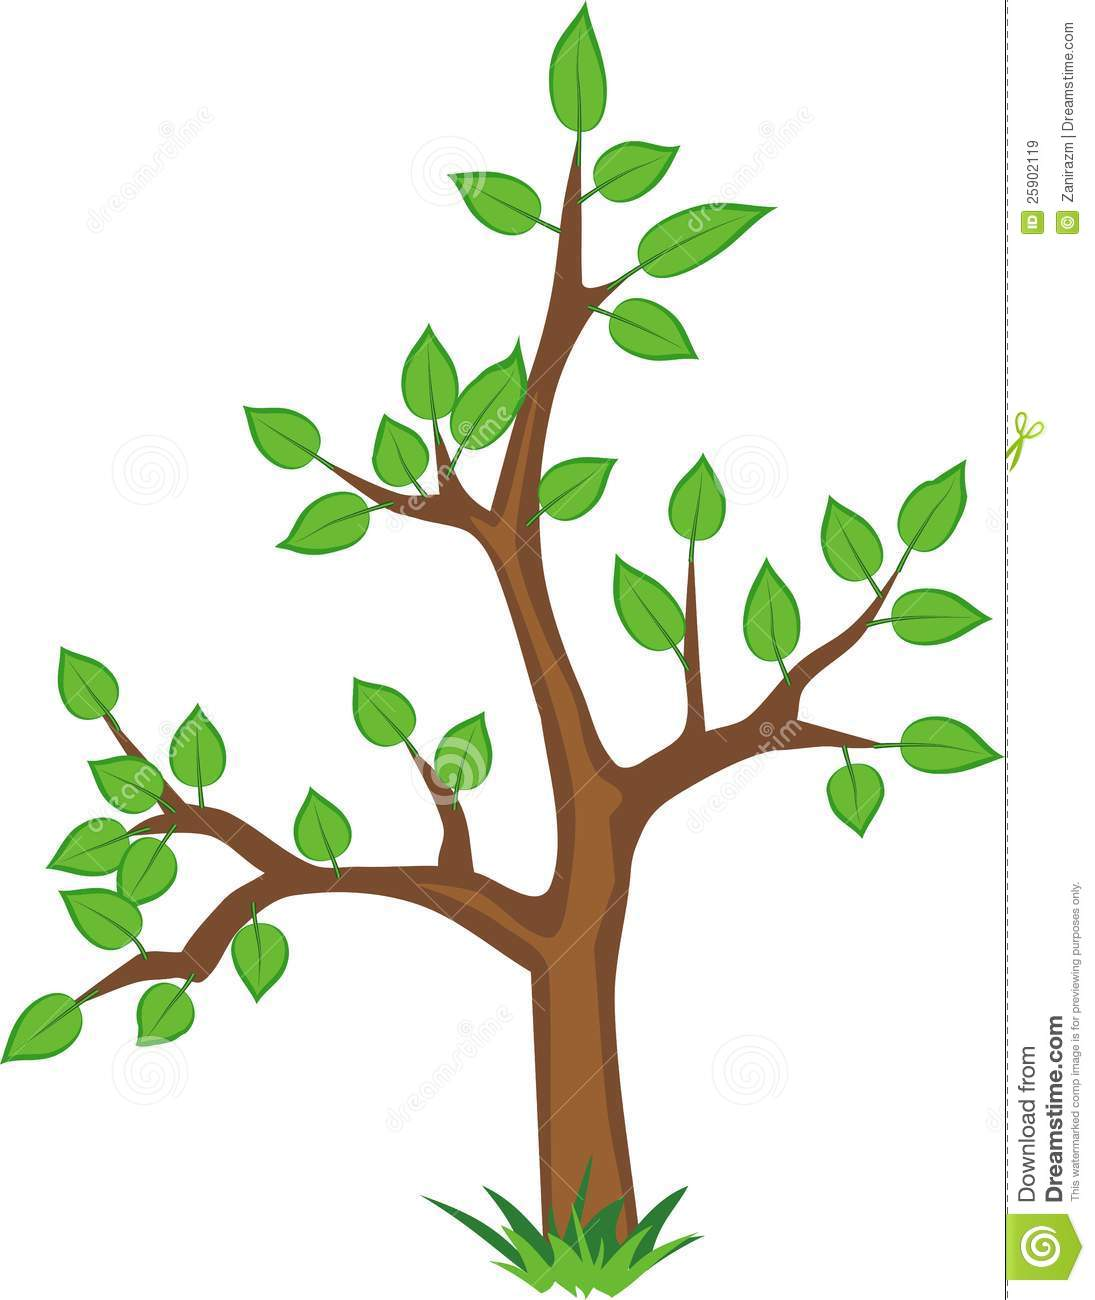 A Young Tree With Green Leaves On A White Backgrou Stock Vector.